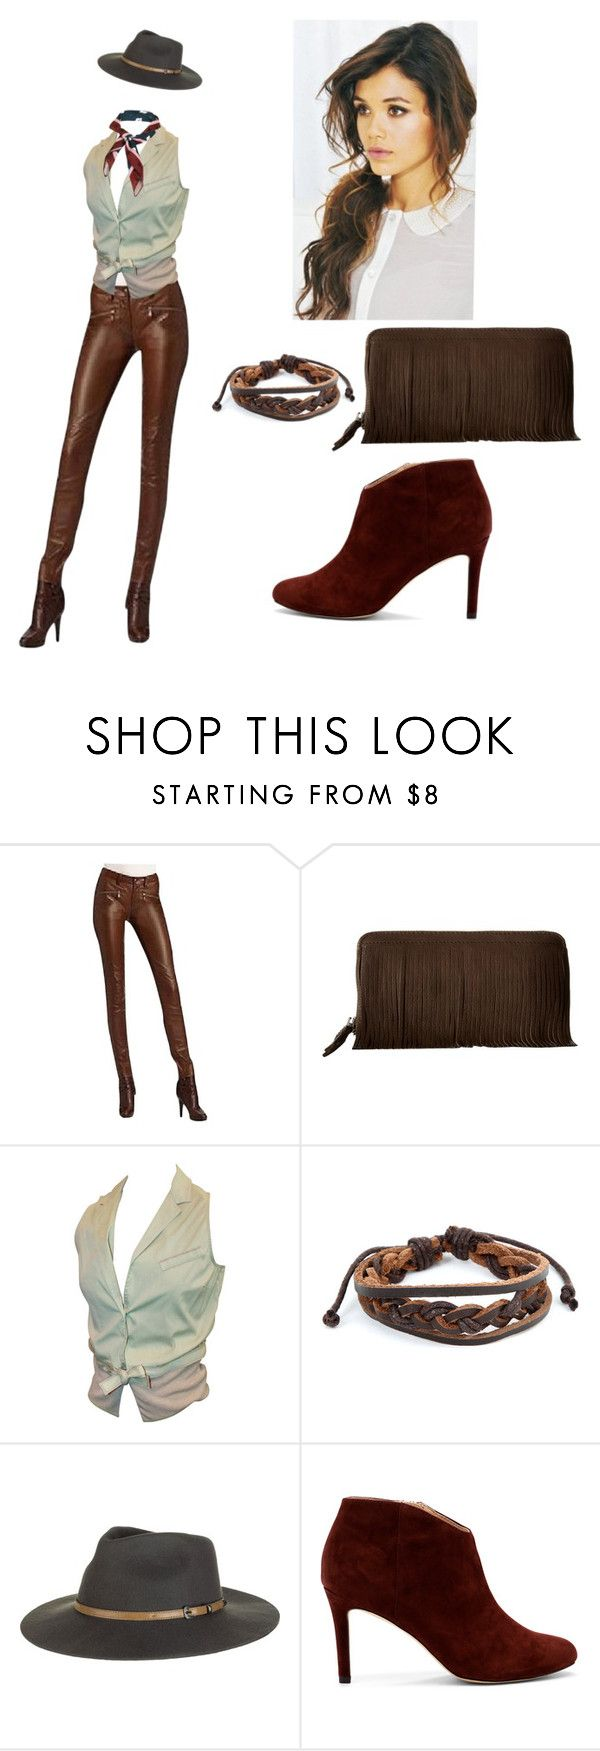 """Urban cowgirl"" by amory-eyre ❤ liked on Polyvore featuring Ralph Lauren, COWBOYSBELT, Brunello Cucinelli, West Coast Jewelry, Sole Society and Topshop"